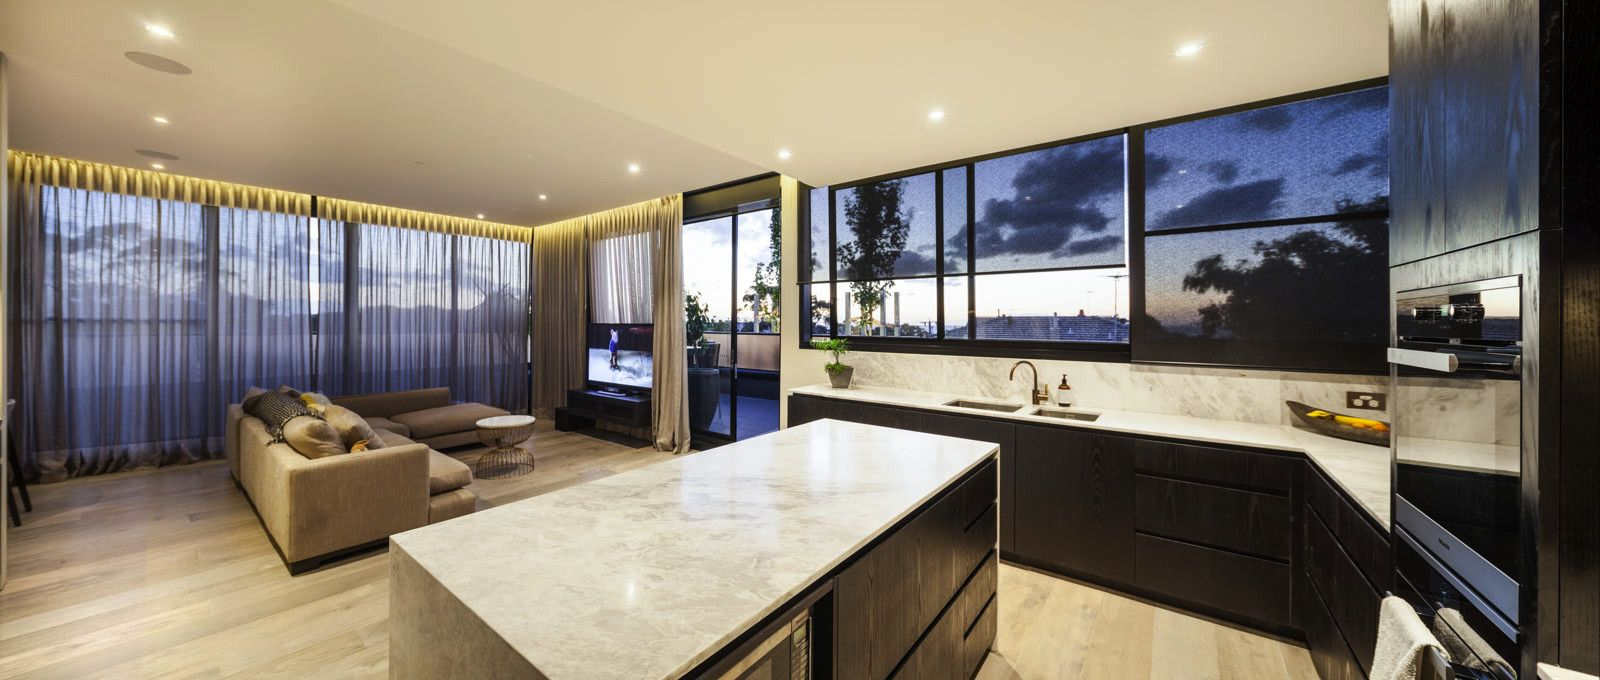 Penthouse 201/43 Willis St, Hampton VIC 3188, Image 1